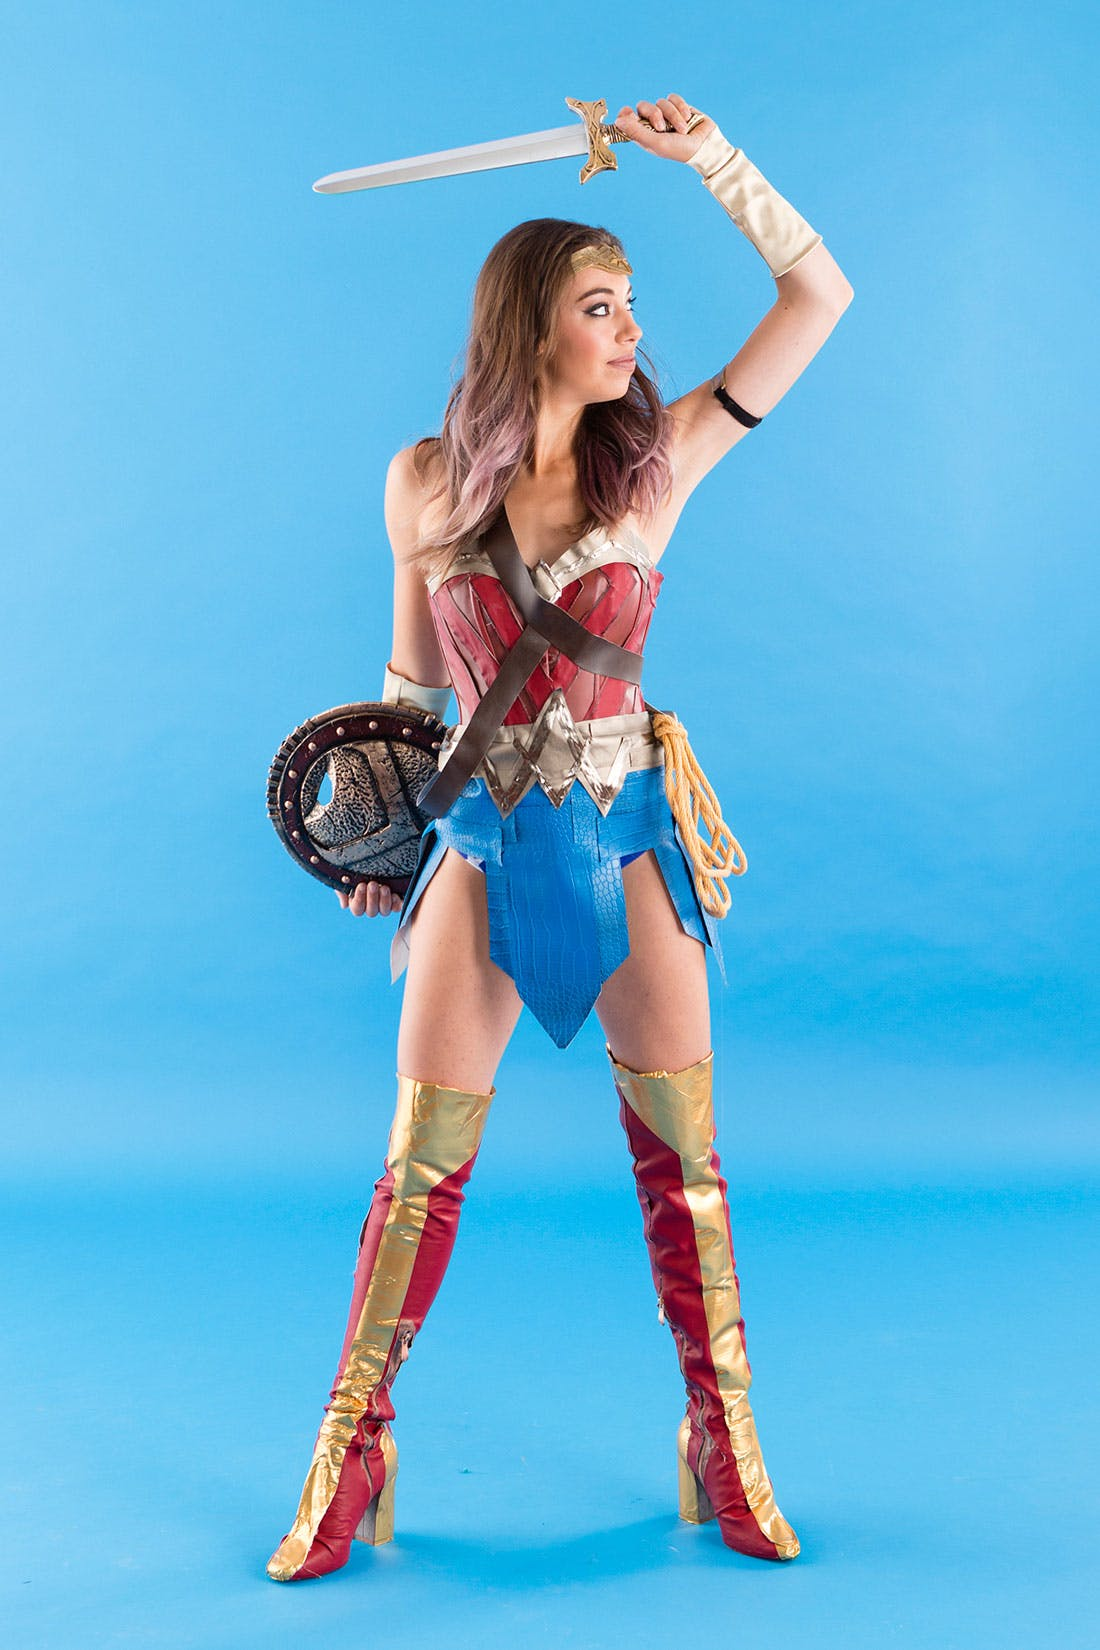 Faux leather wonder woman and amazons halloween costumes be sure to take lots of selfies because were sure that wonder woman herself would approve of these head turning looks happy halloween solutioingenieria Gallery